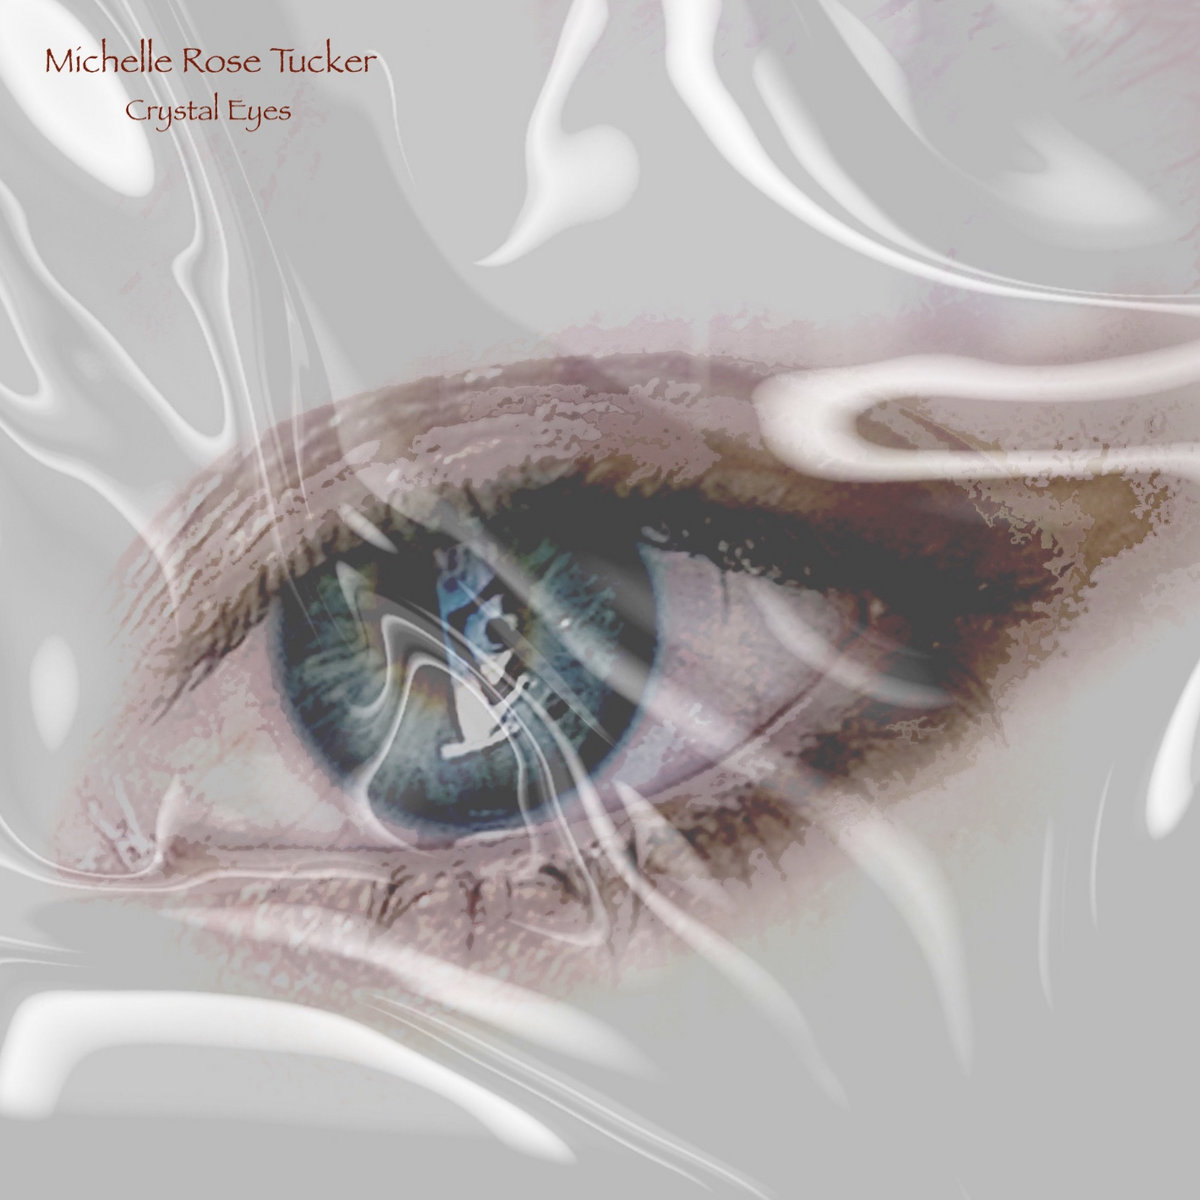 Crystal Eyes by Michelle Rose Tucker